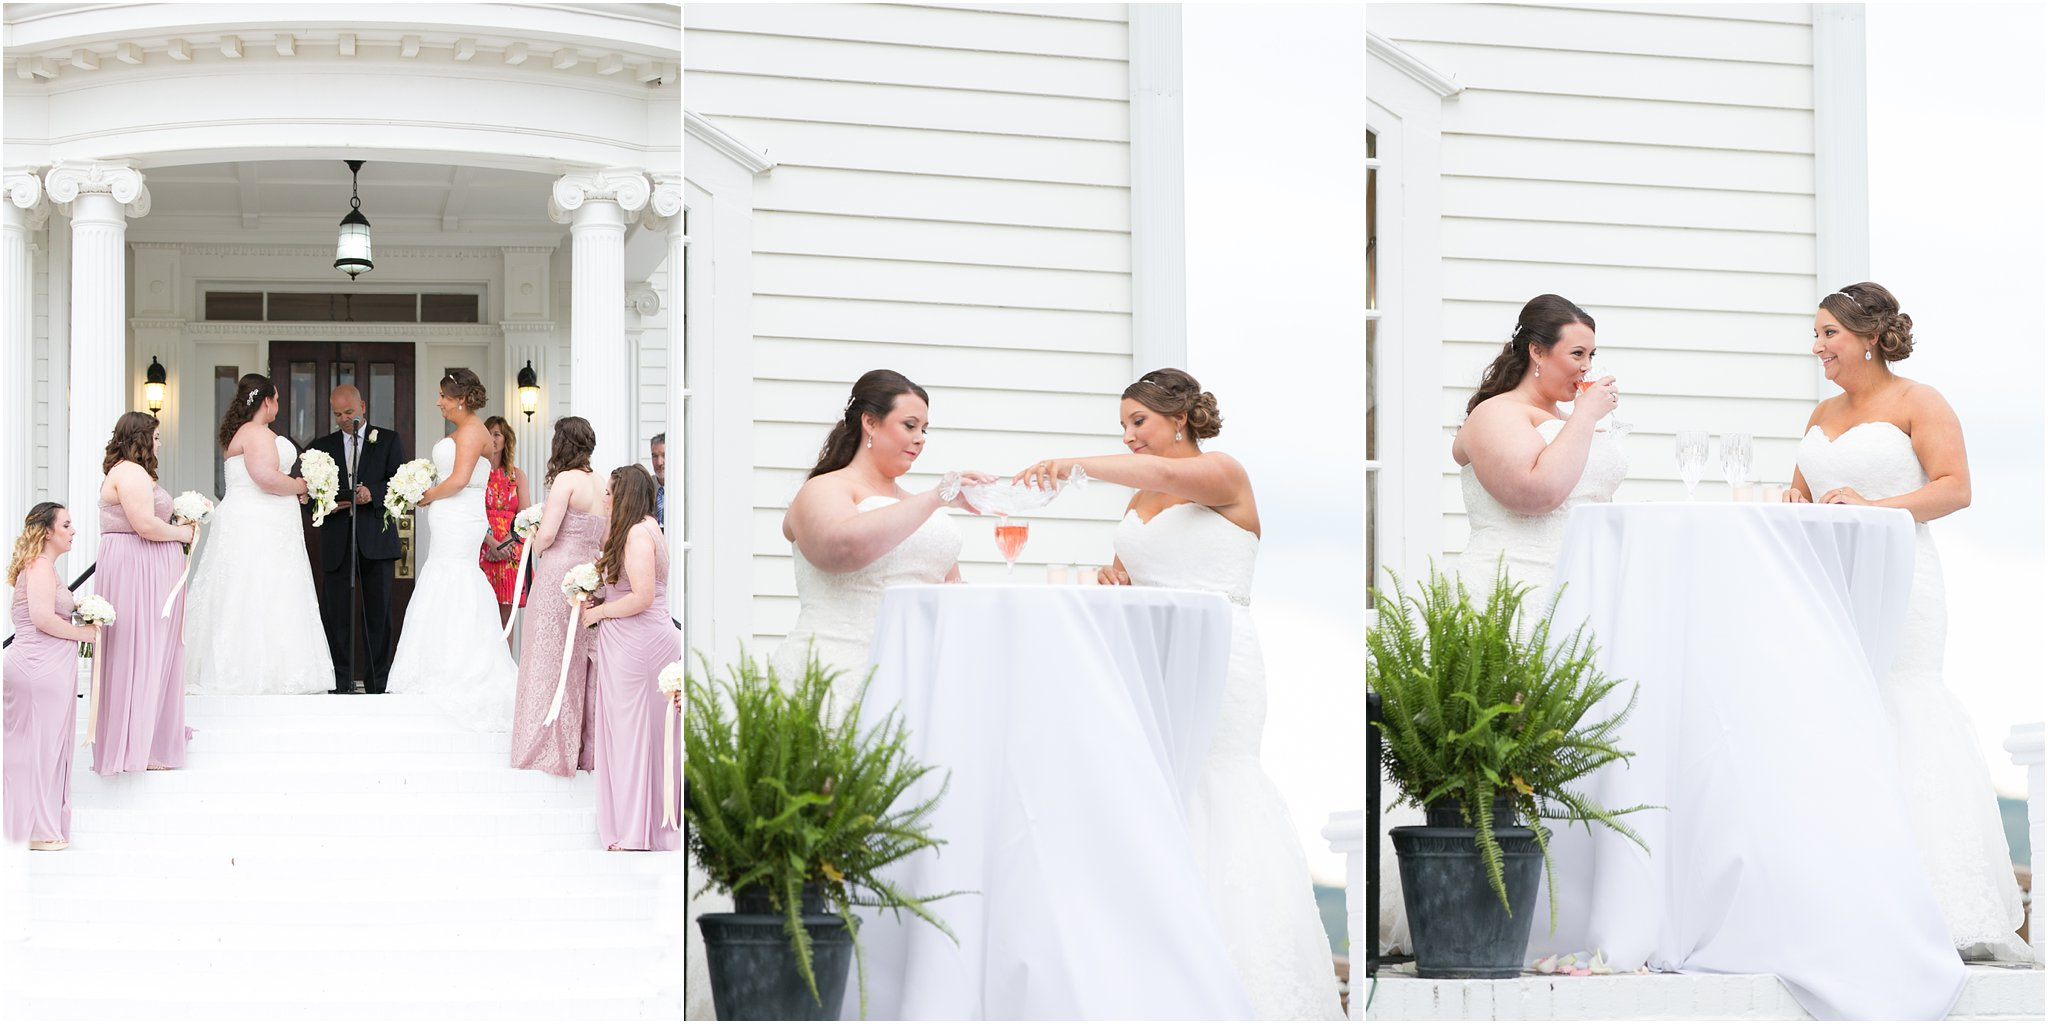 jessica_ryan_photography_wedding_suffolk_obici_house_wedding_0423